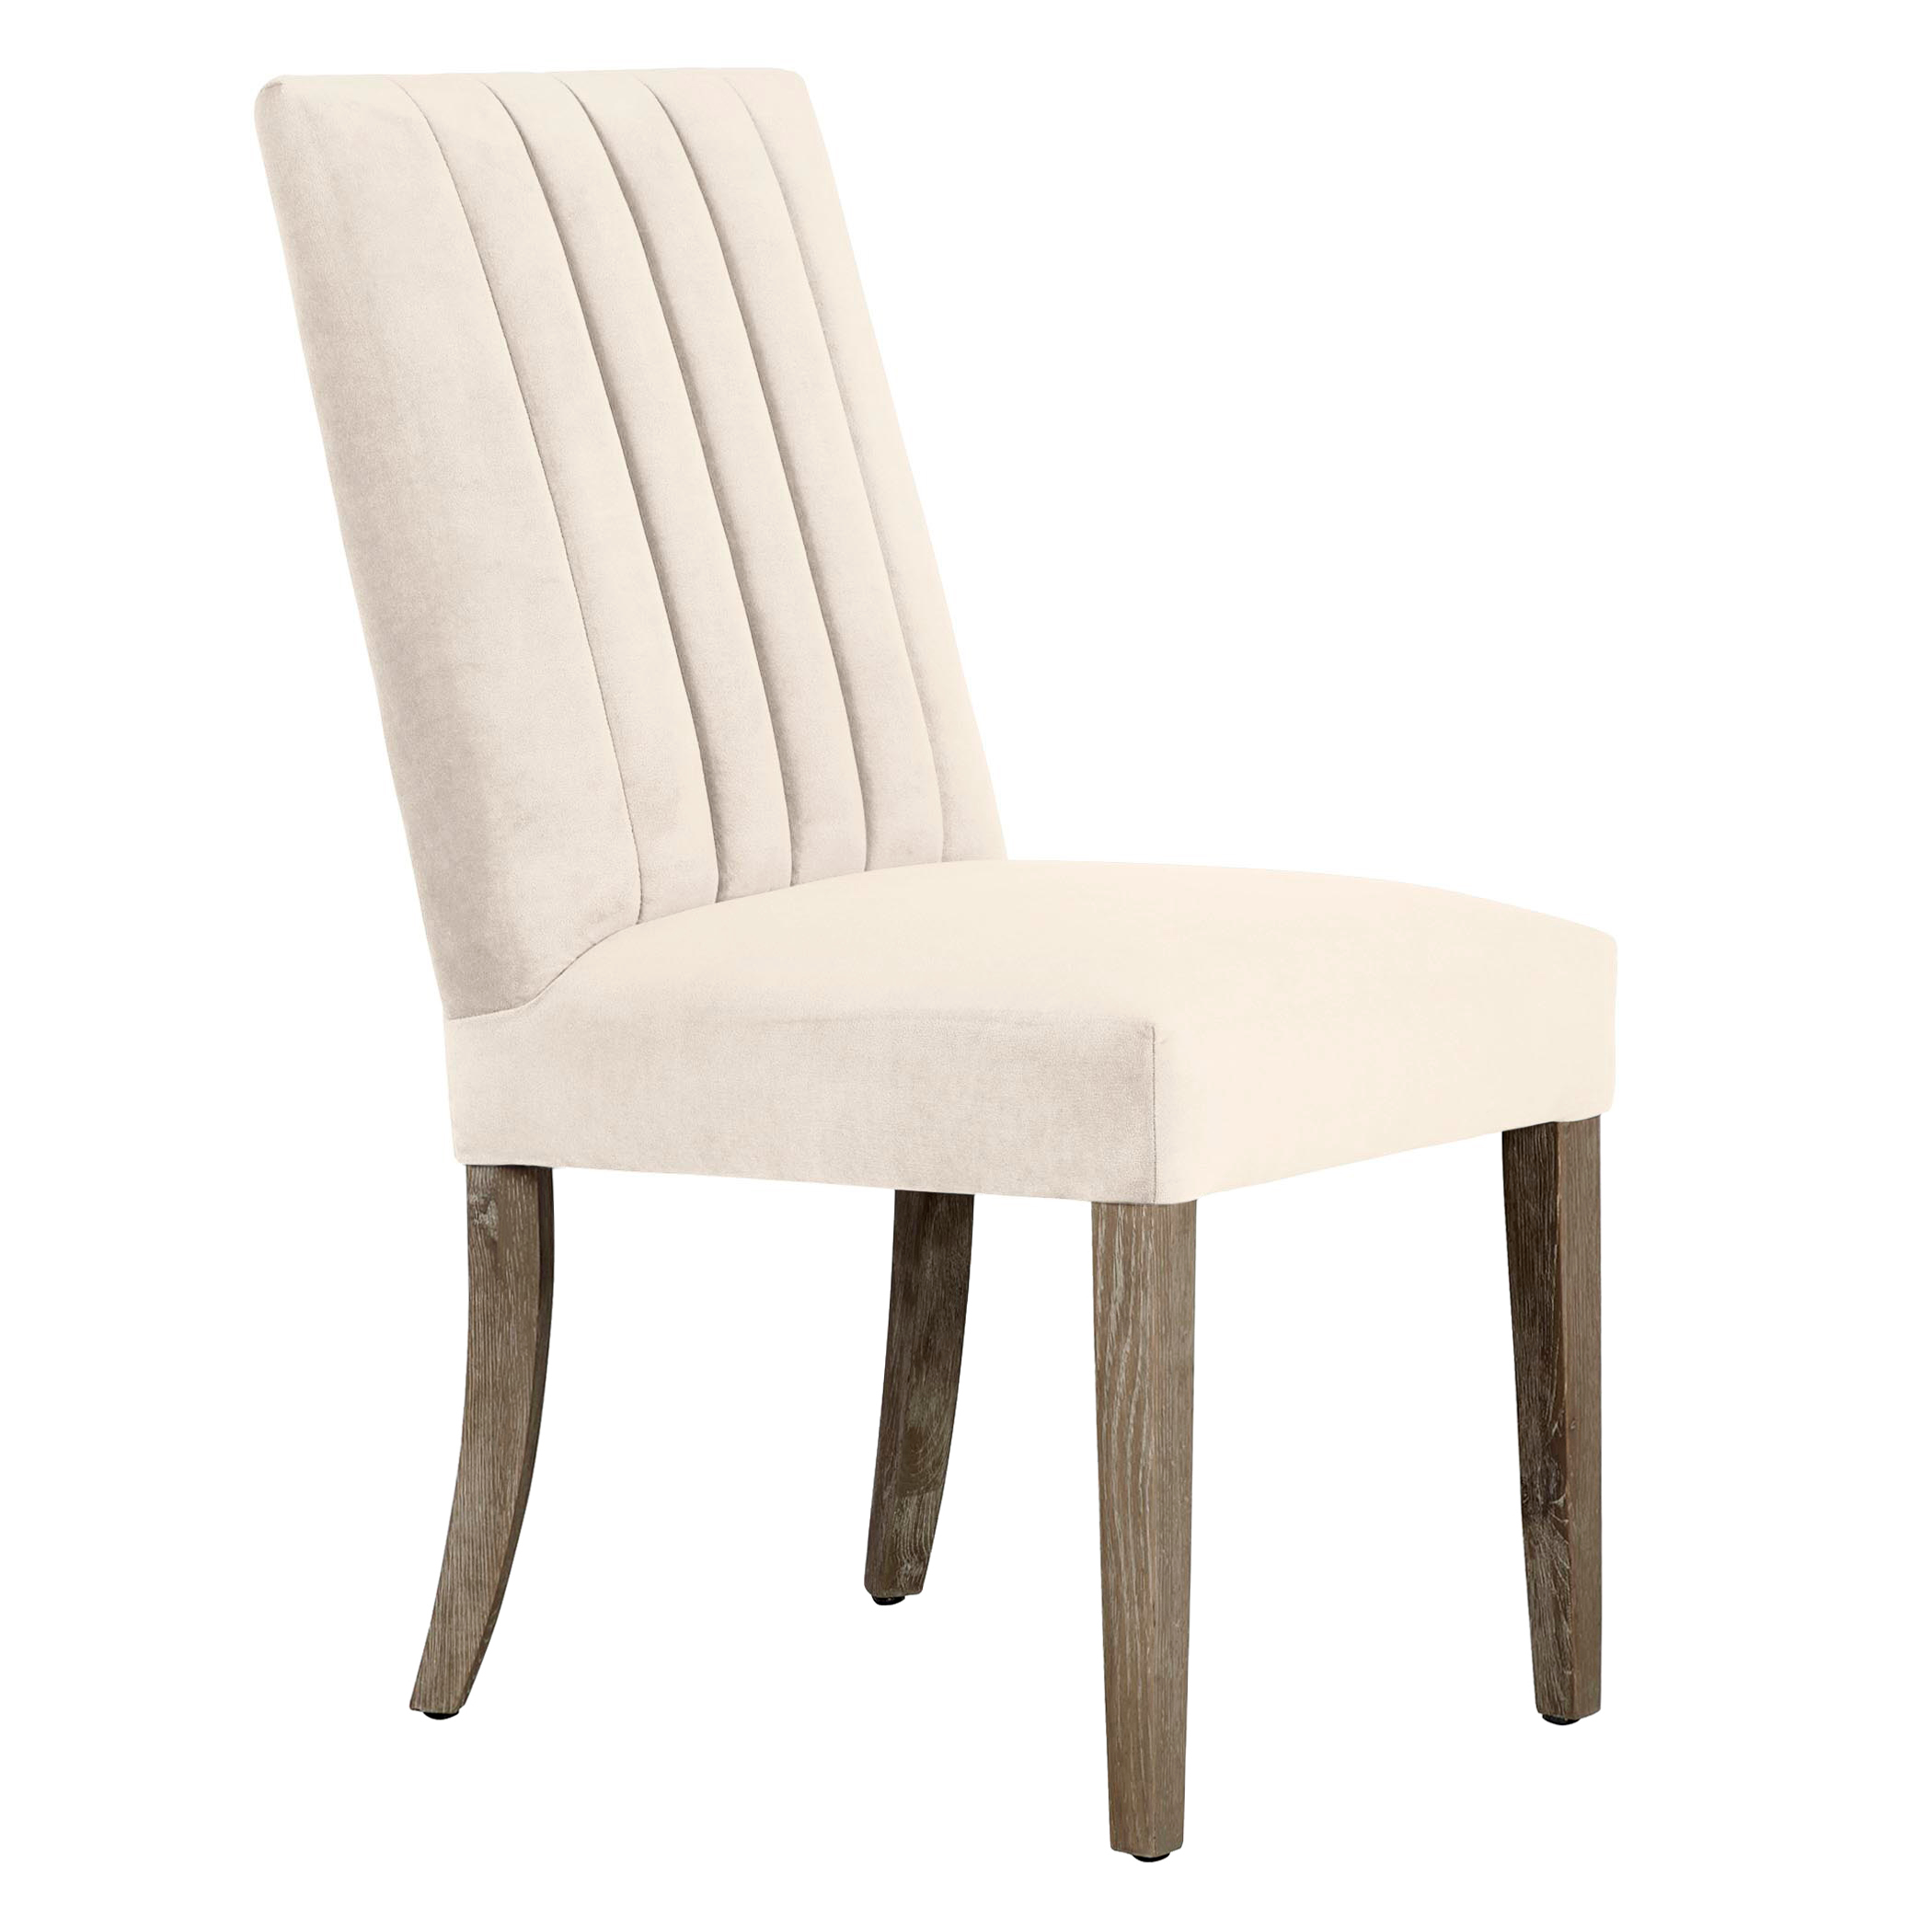 Easton Dining Chair - Natural Grey